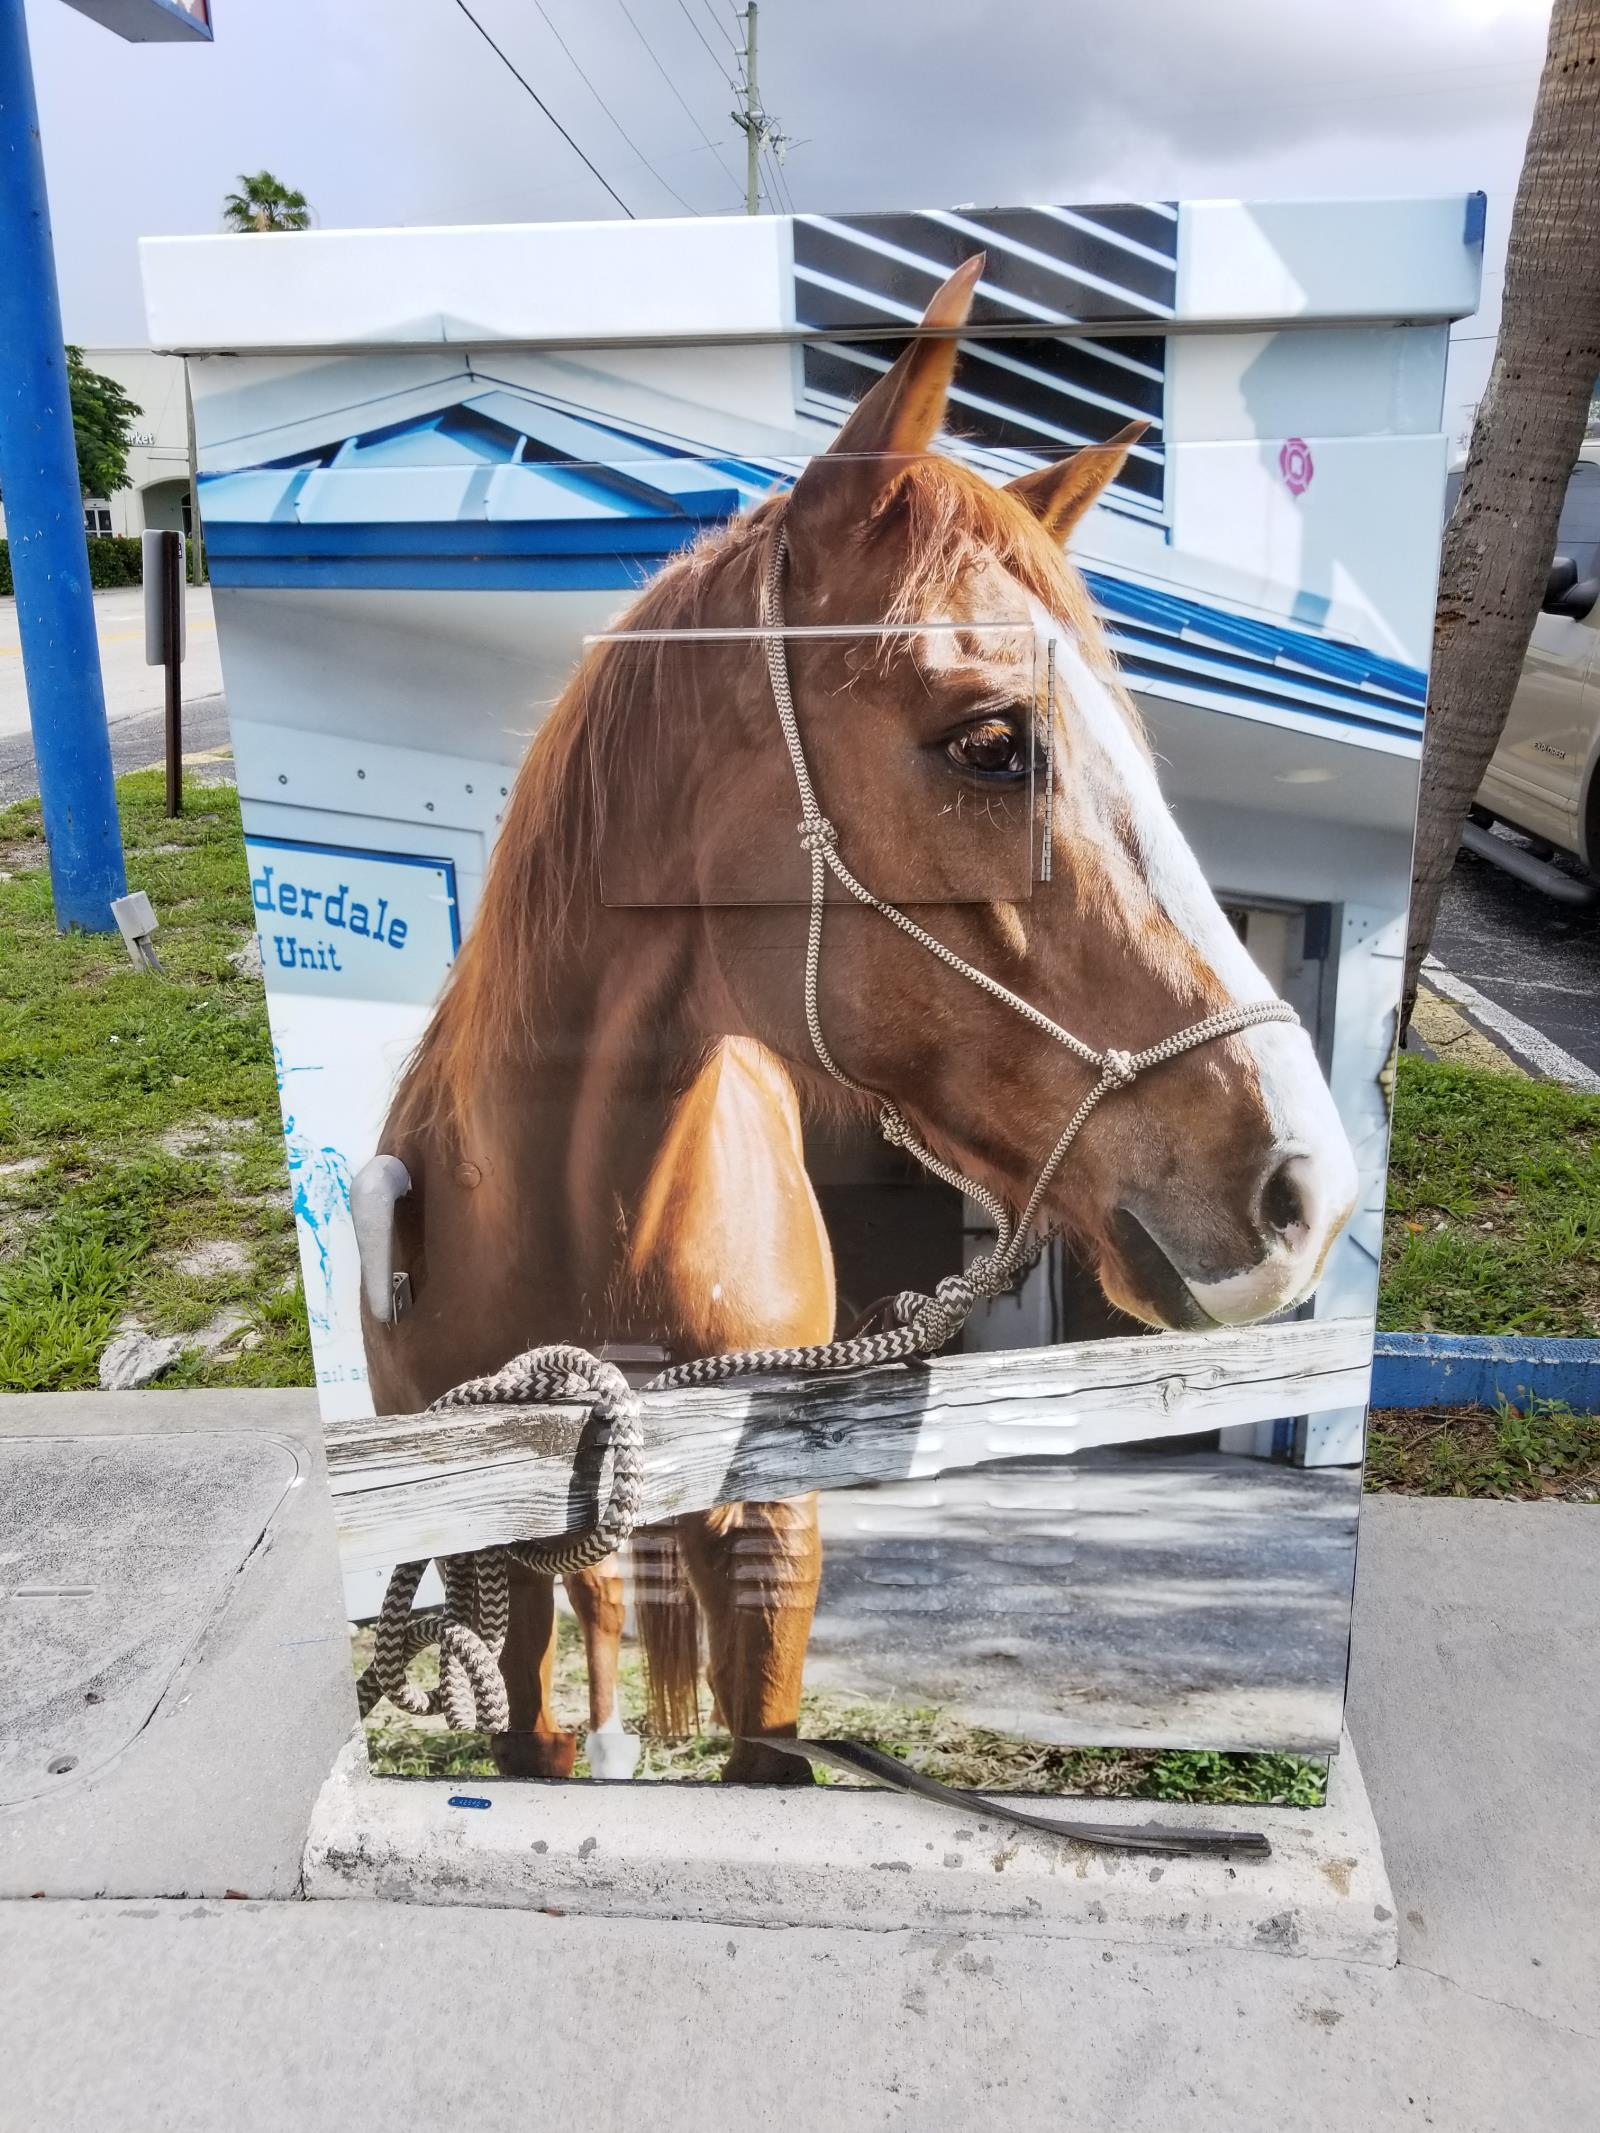 Officer Danny - A retired horse from Fort Lauderdale's Mounted Unit